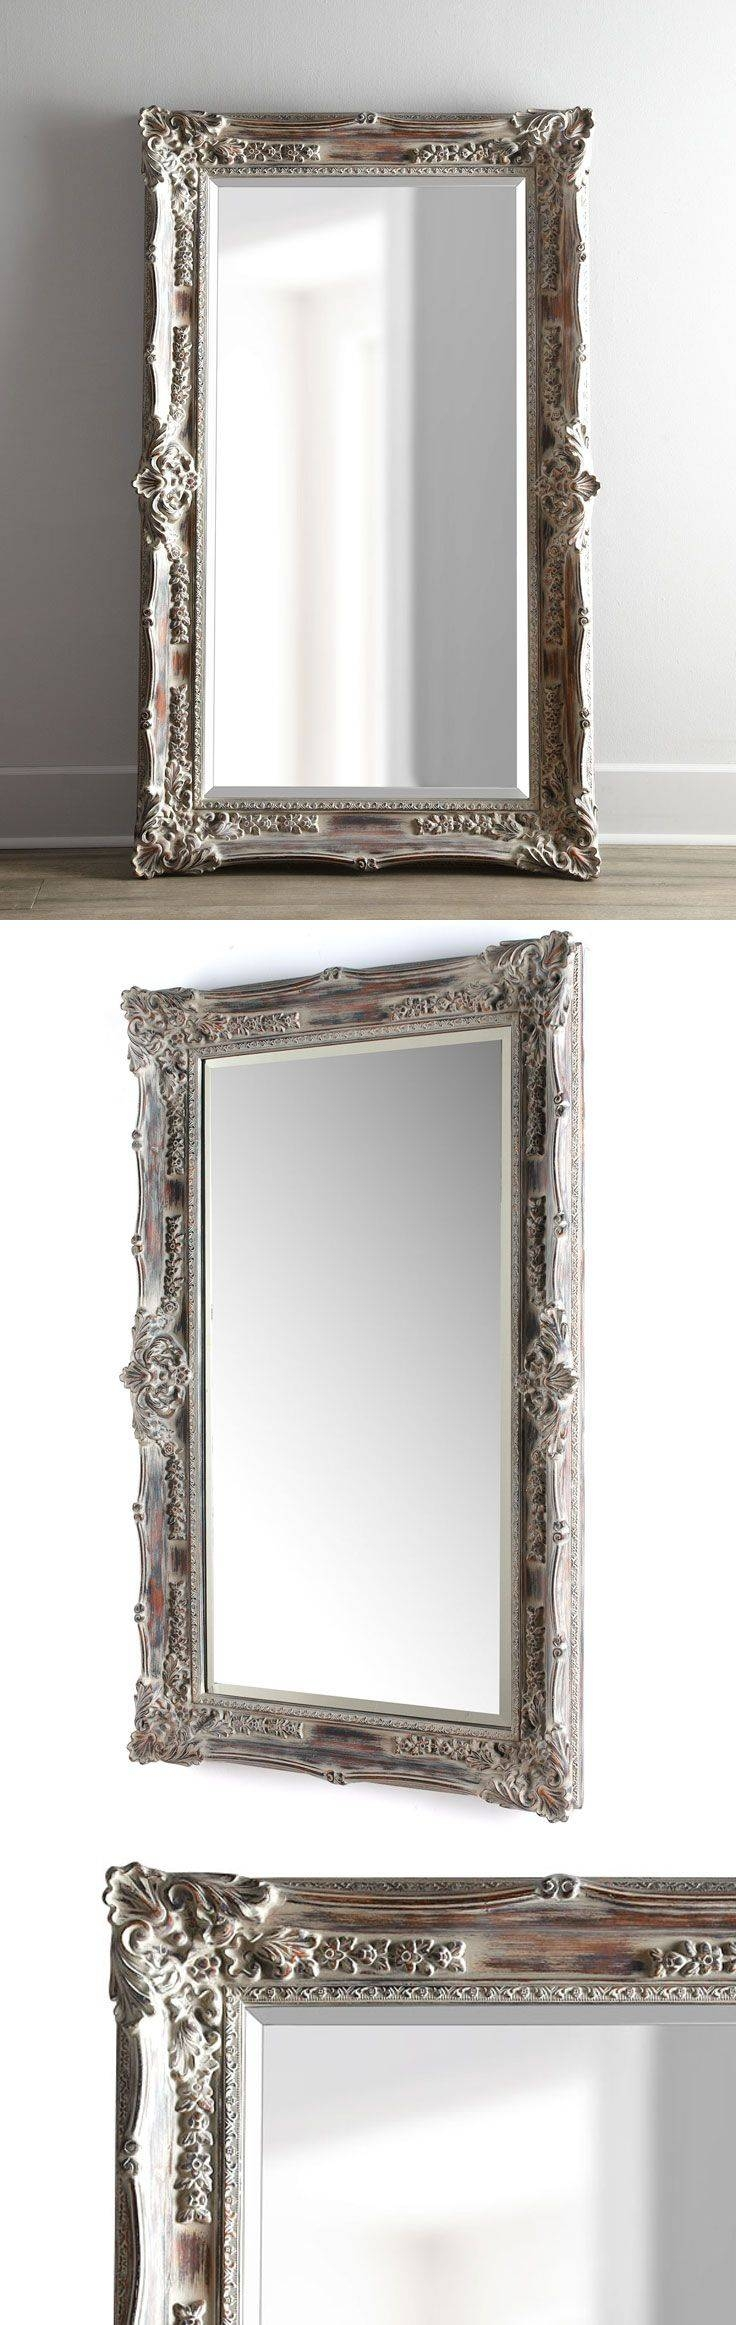 57 Best Shop: Wall Decor Images On Pinterest | Wall Decor, Mirror inside Antique French Floor Mirrors (Image 3 of 25)